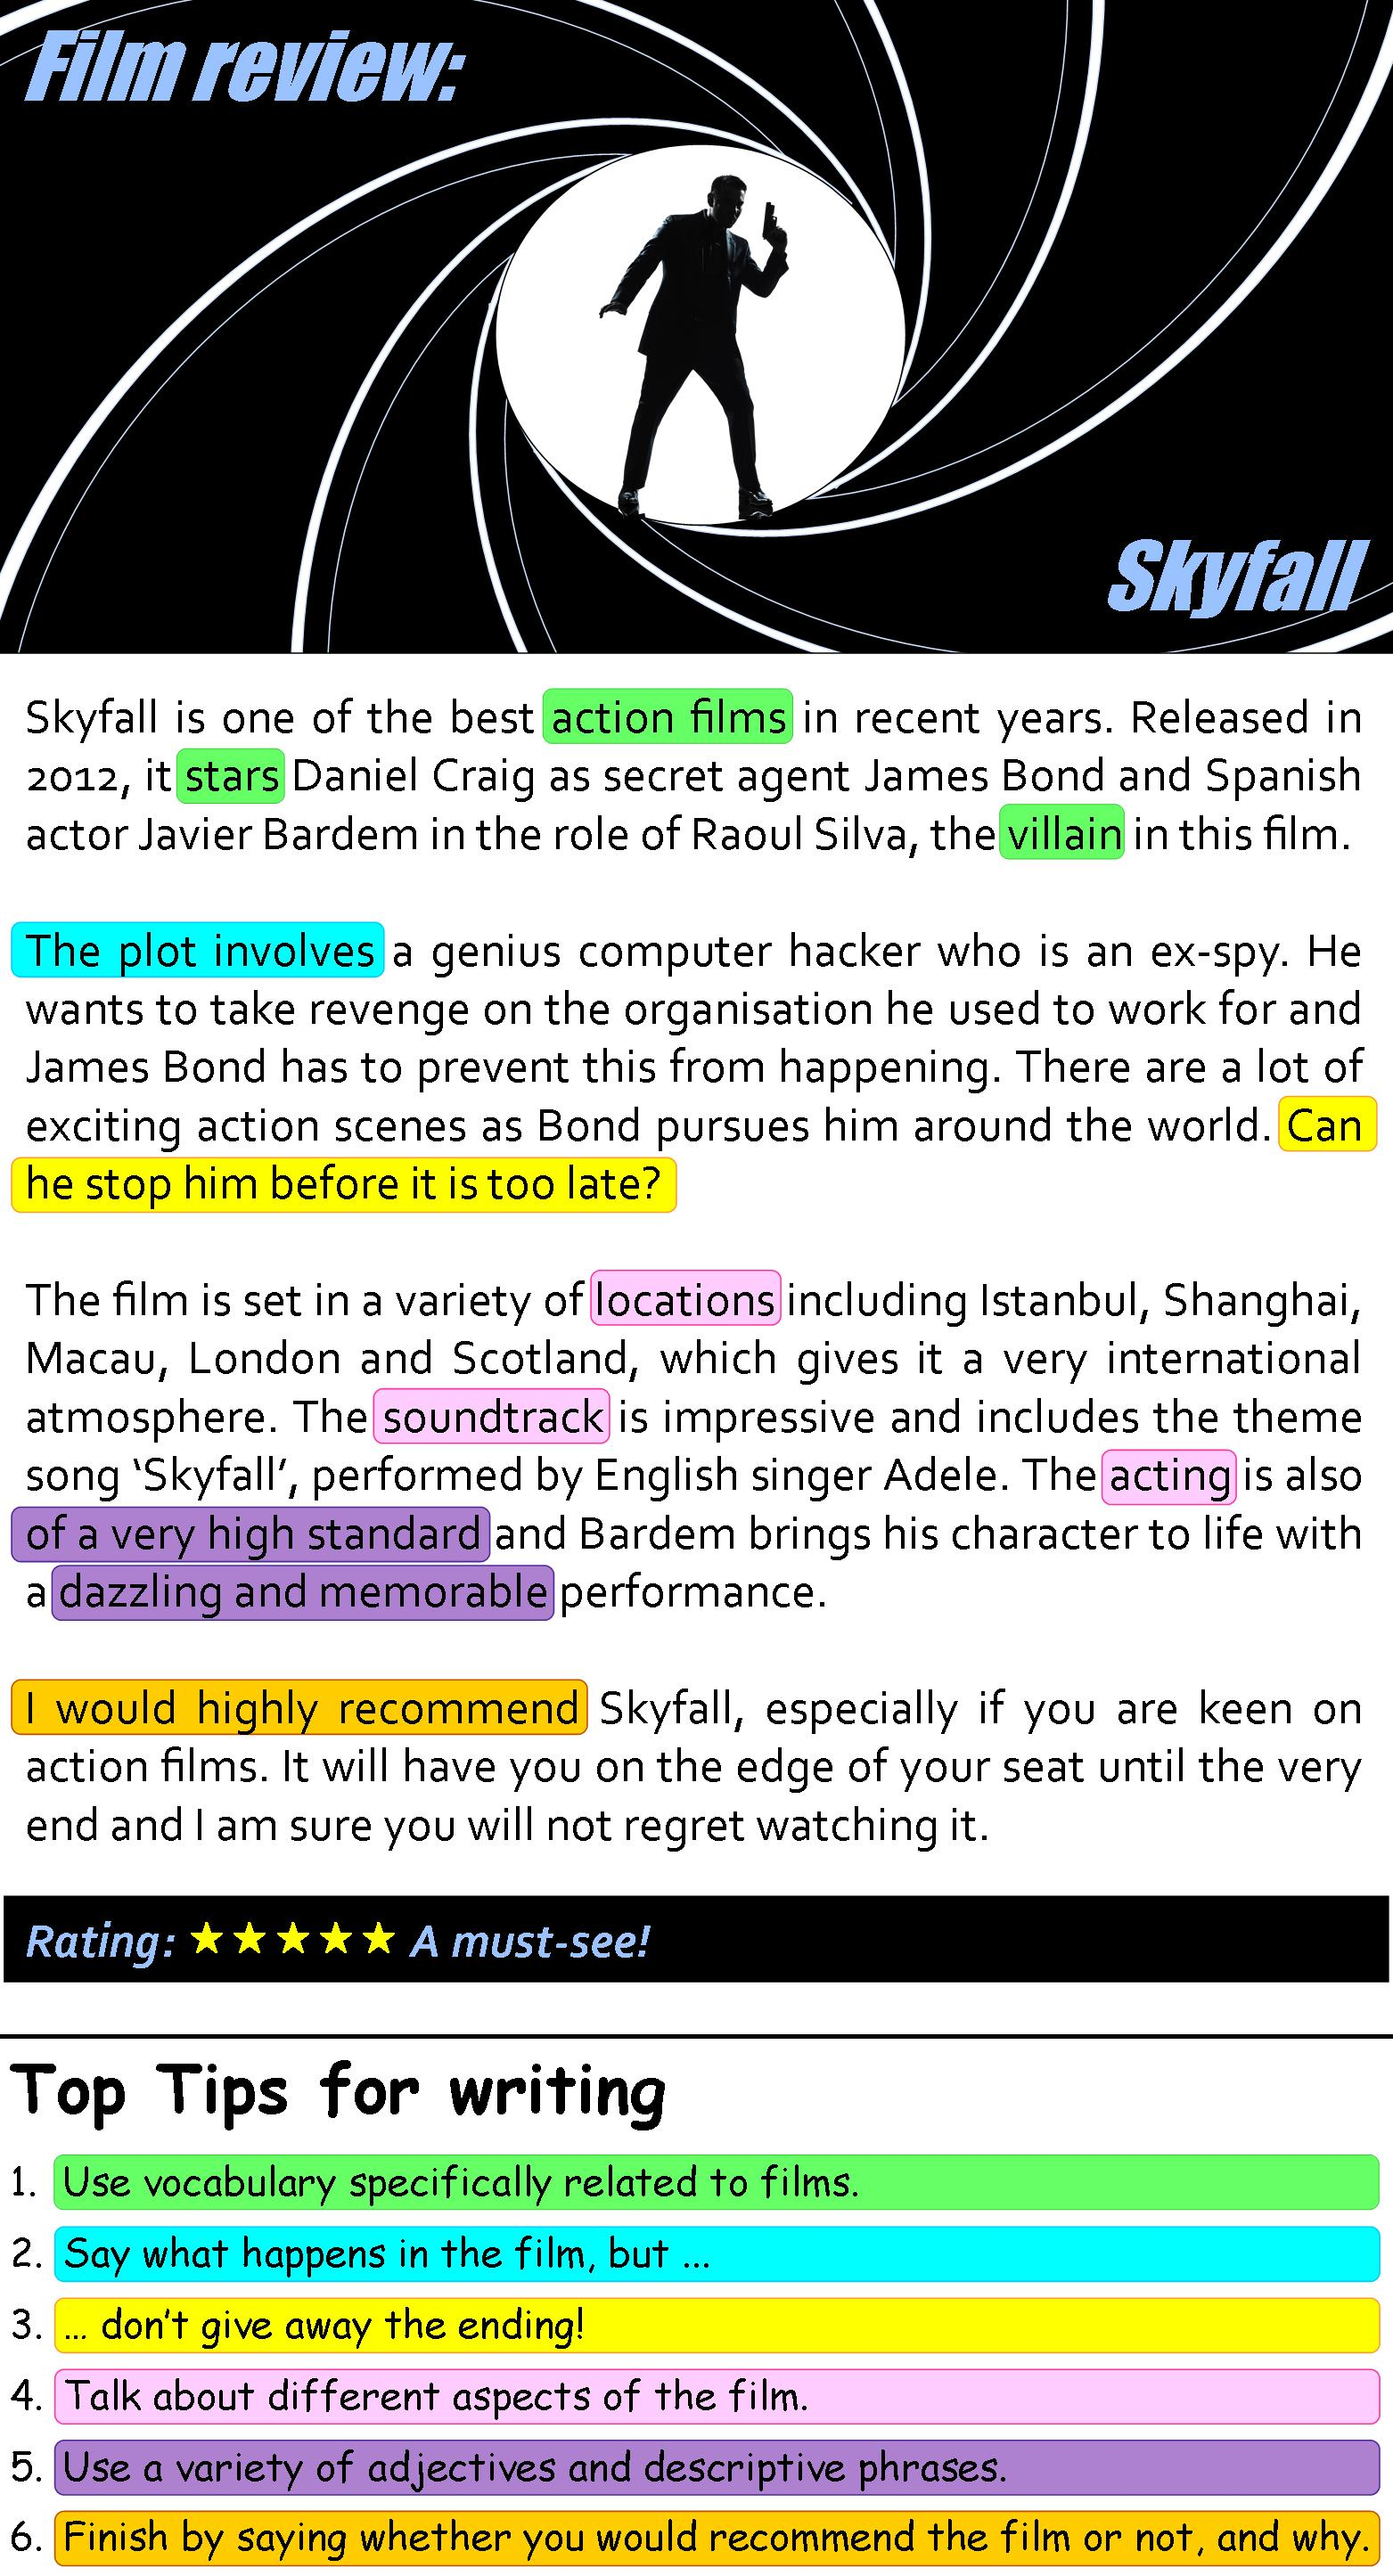 Skyfall Film Review Learnenglish Teens